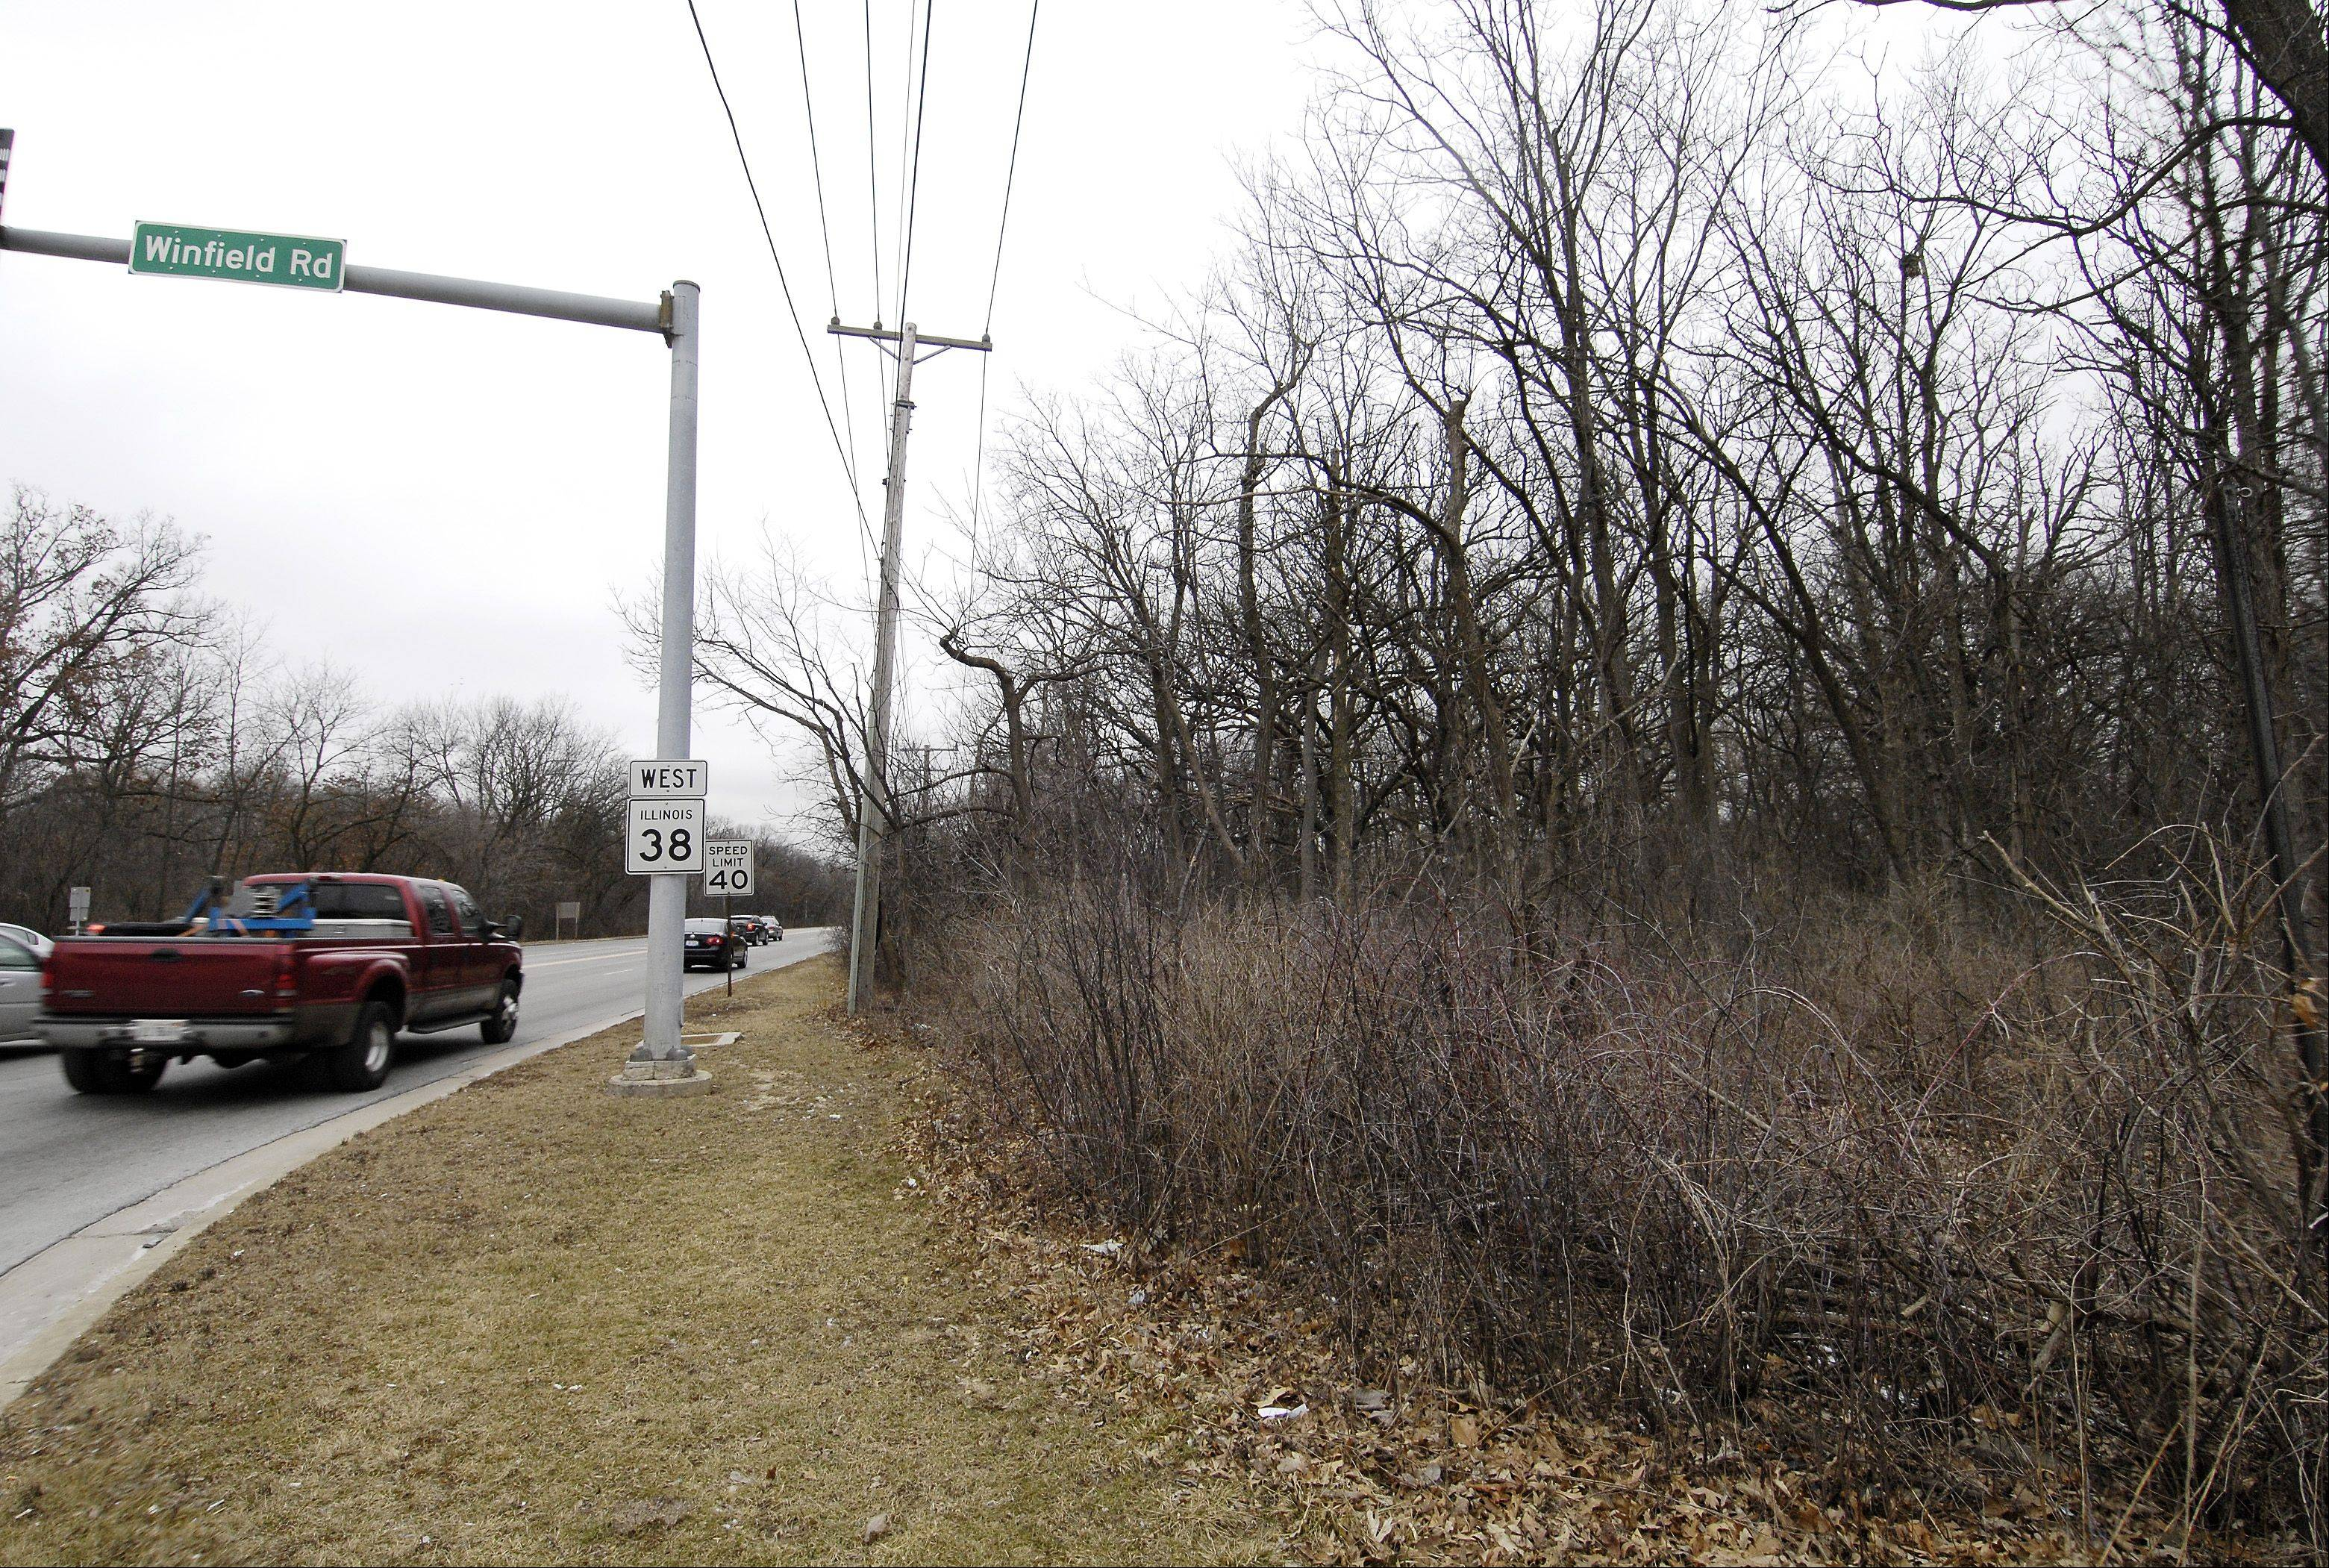 Winfield trustees on Thursday night repealed a decision to rezone of a stretch of Roosevelt Road and restored residential zoning to the properties.